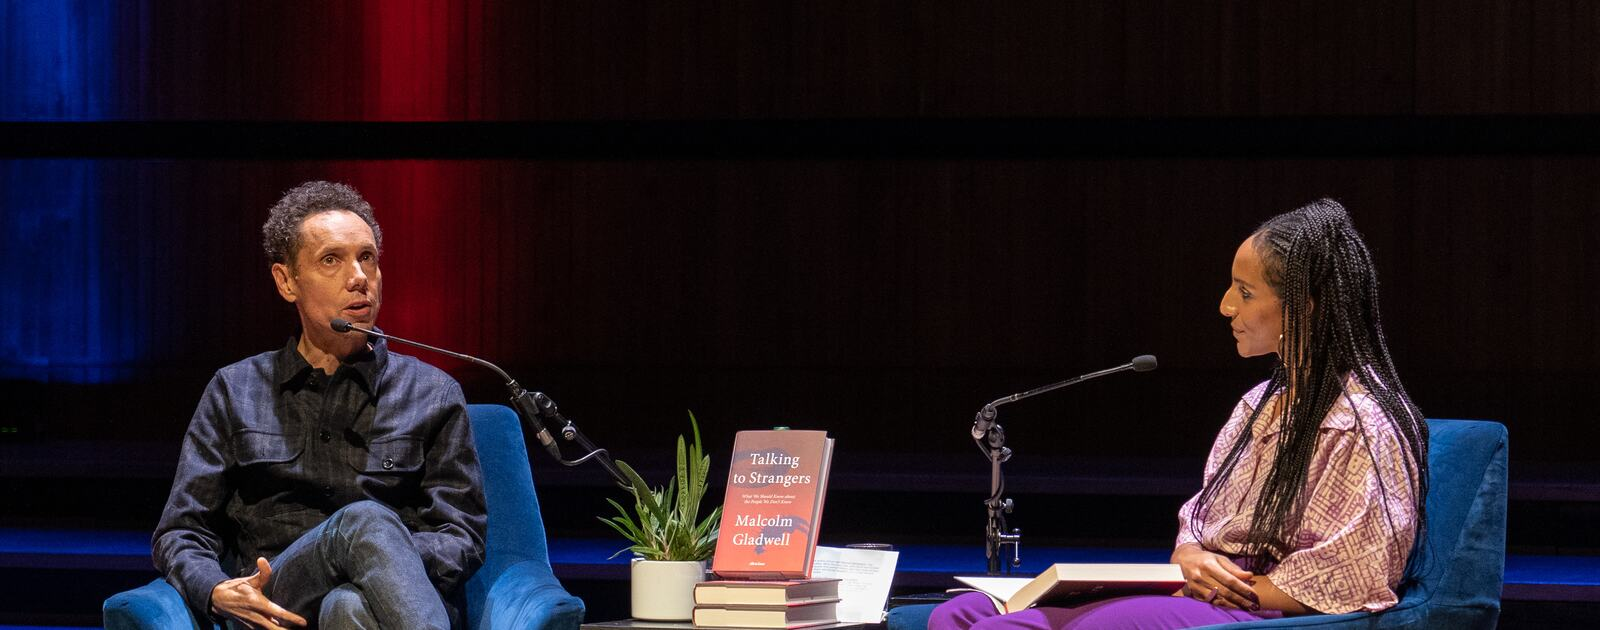 Malcolm Gladwell in conversation with Afua Hirsch on stage at Southbank Centre's Royal Festival Hall